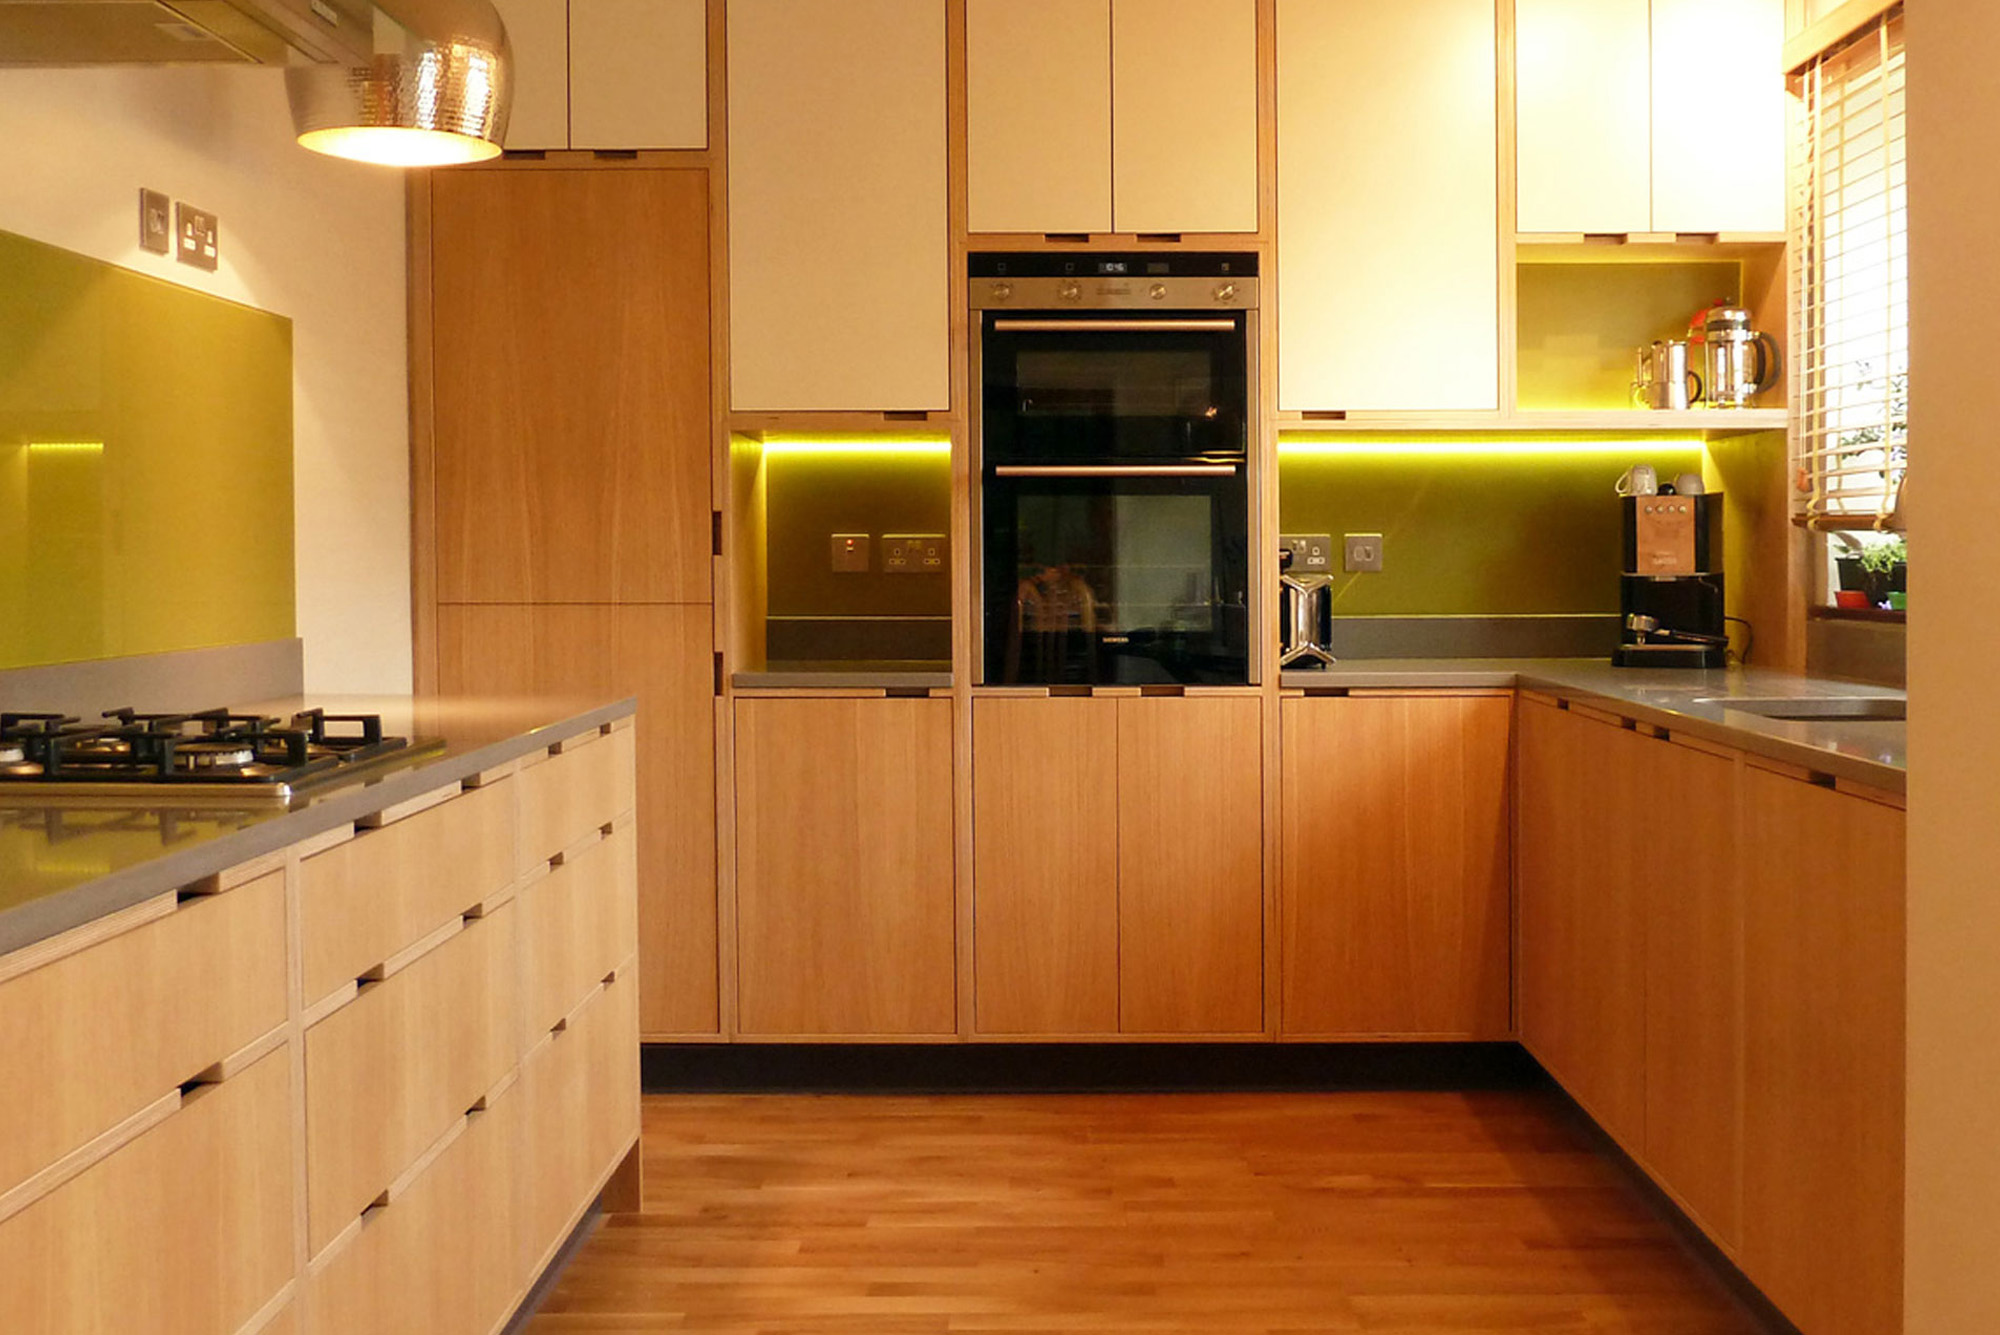 Oak veneer plywood kitchen doors